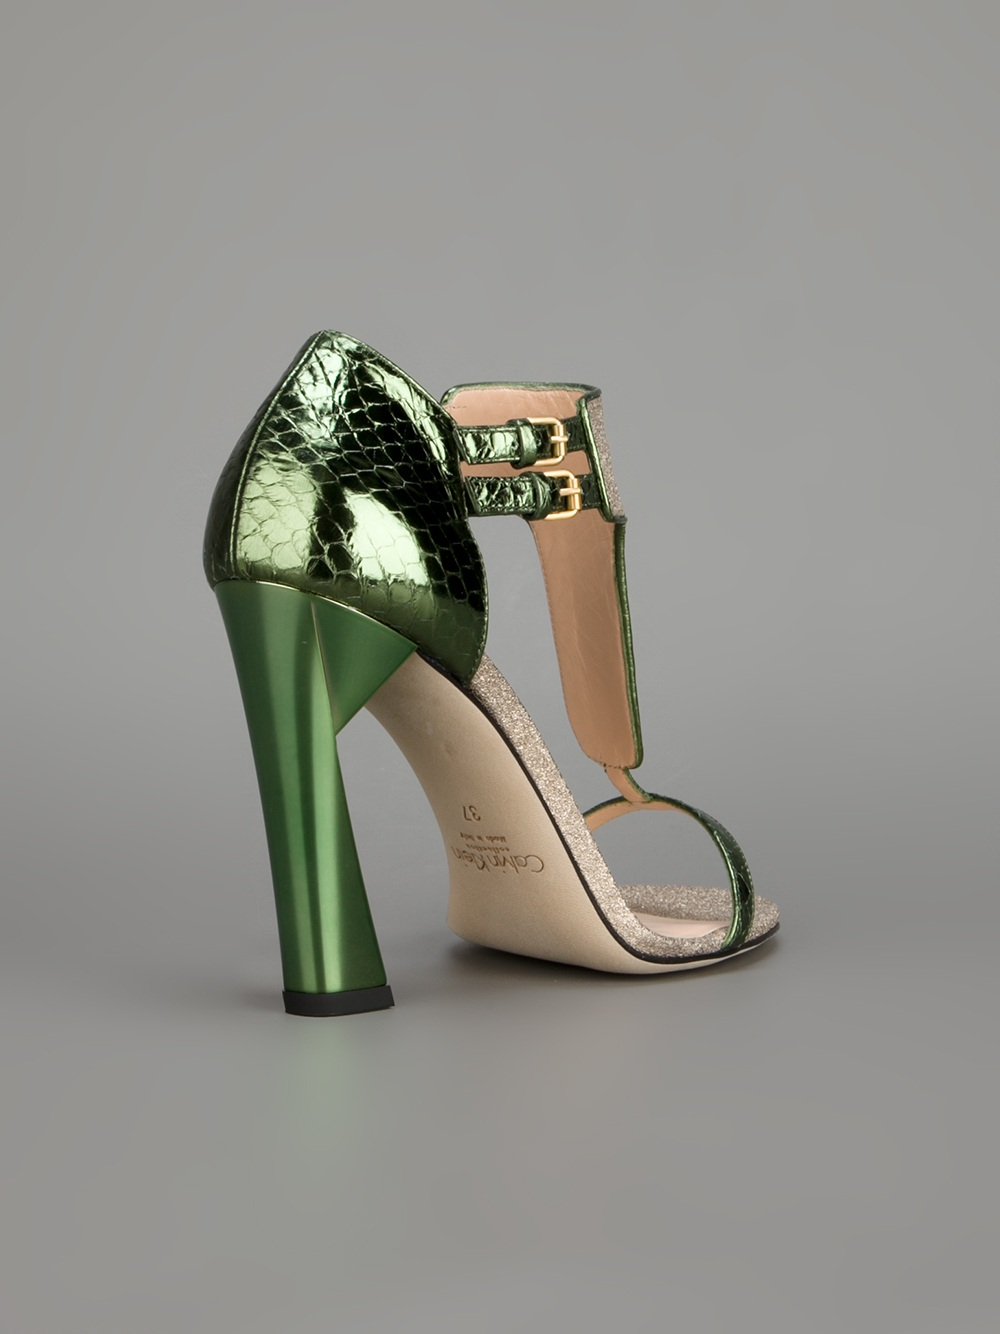 lyst calvin klein highheeled sandal in green